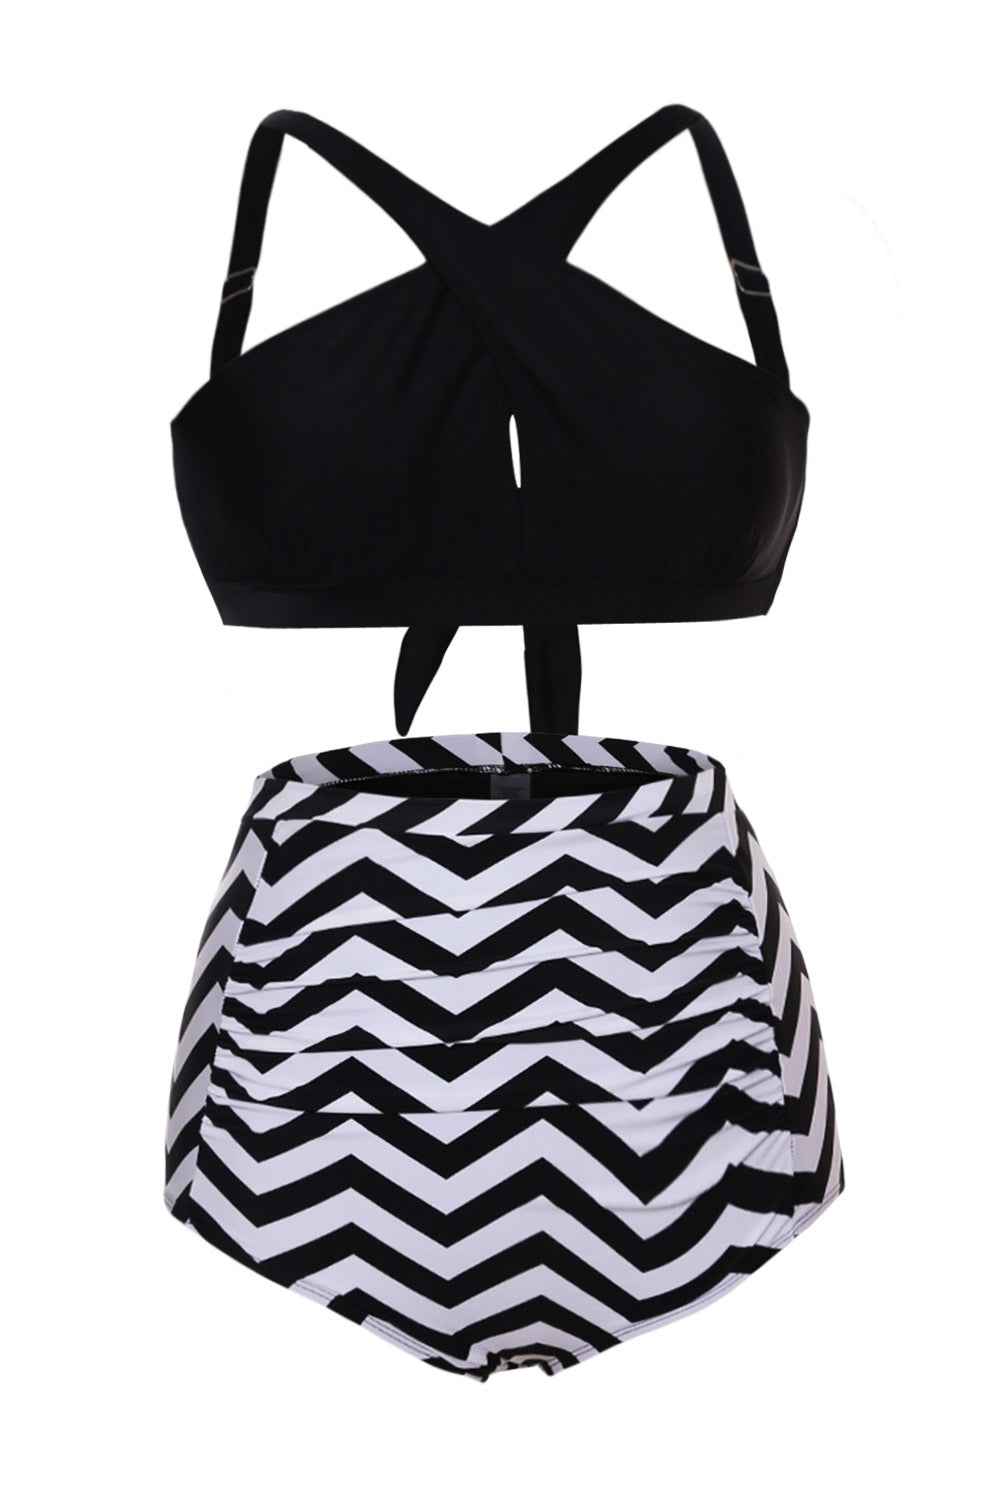 Her Fashion Black White Zigzag Cross Front Bikini High Waist Swimsuit